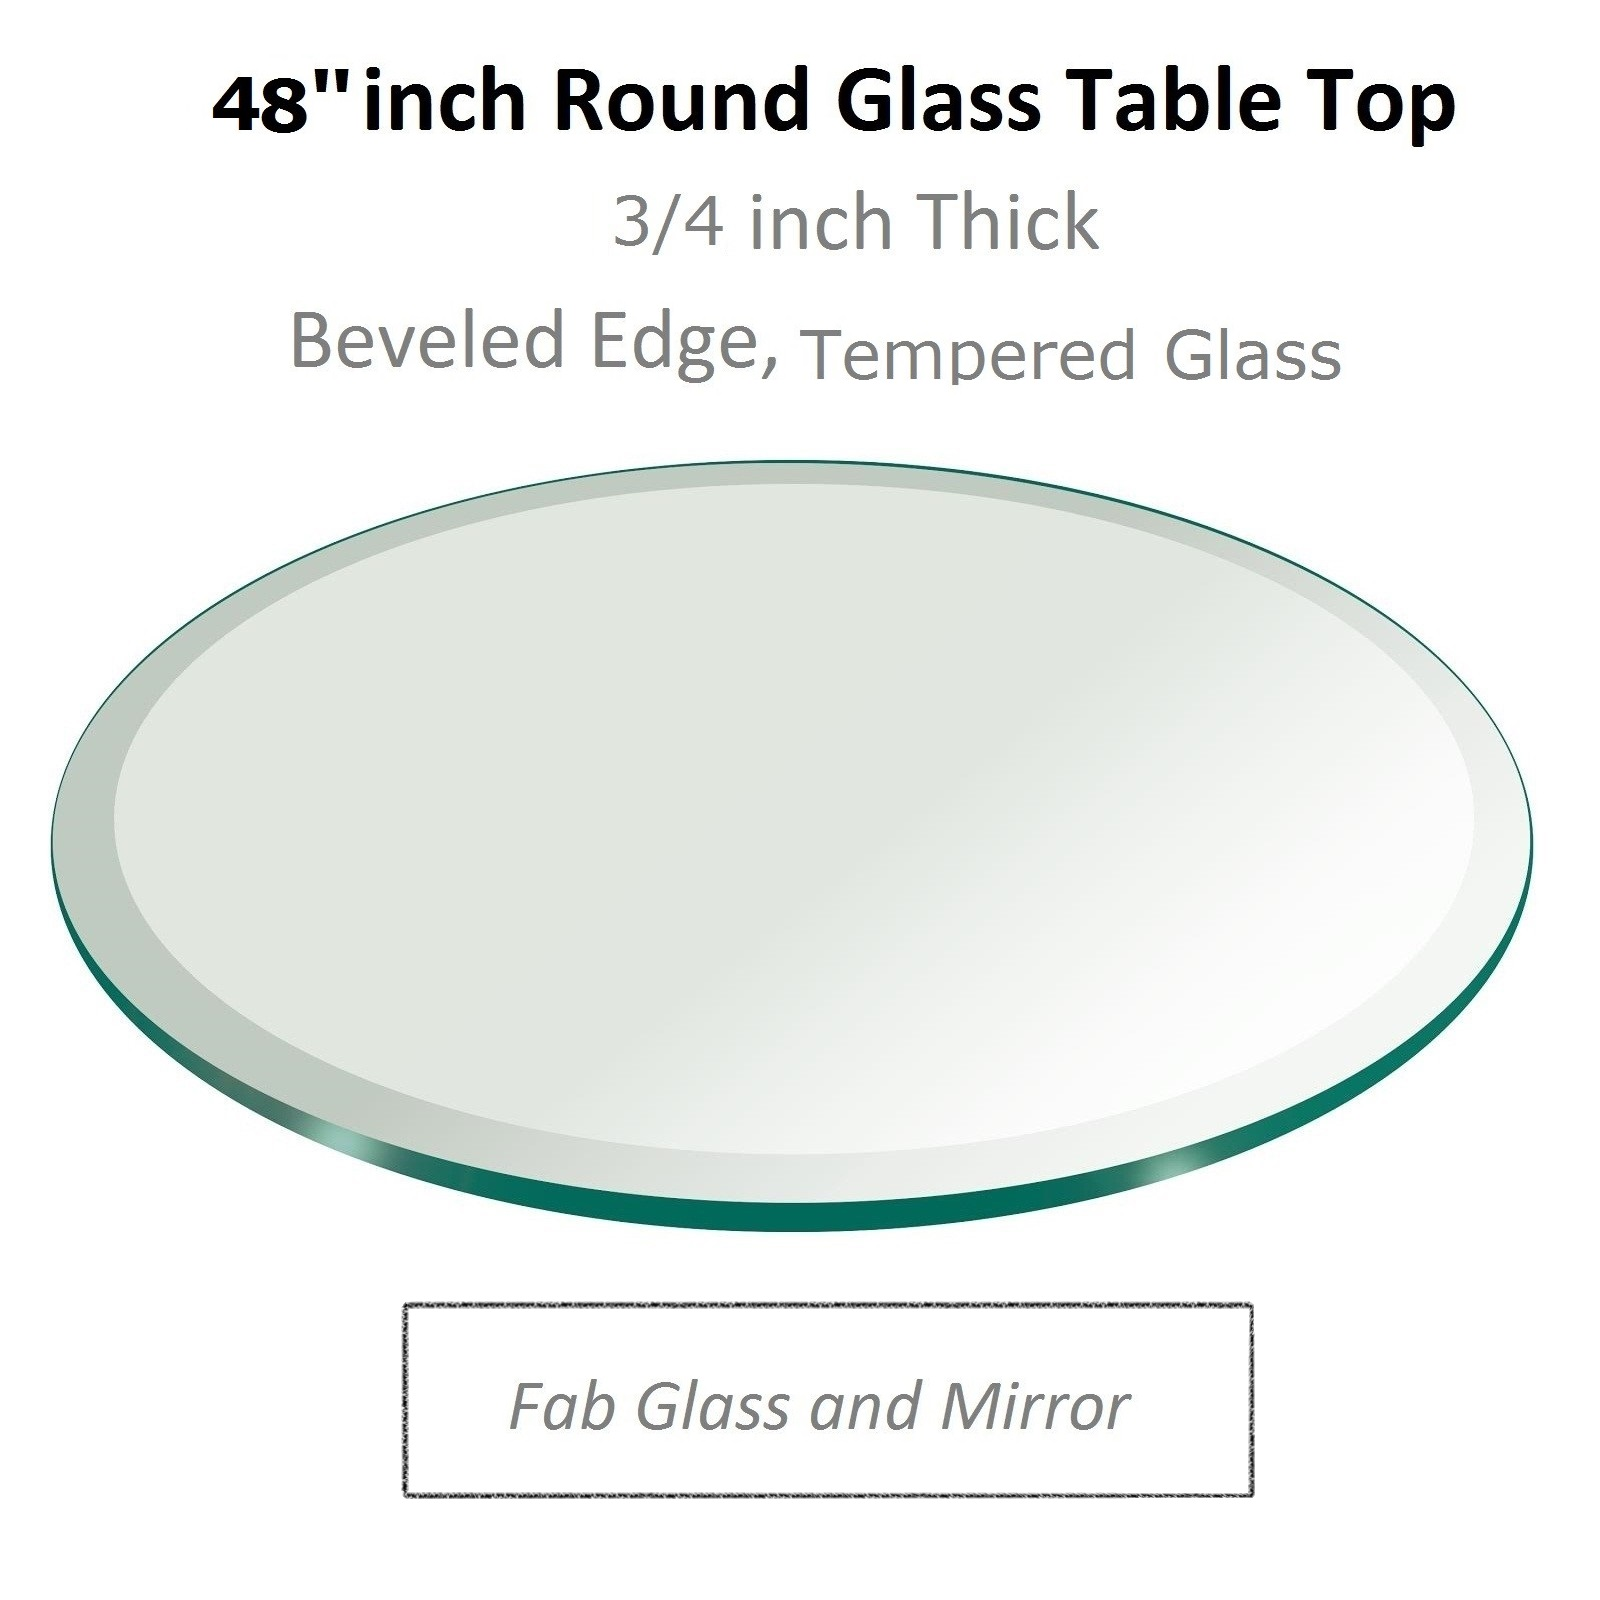 48 Inch Glass Table Top for Perfect Placement at Dining Room : 48inchbevelededgeannealed2 from www.fabglassandmirror.com size 1600 x 1600 jpeg 201kB